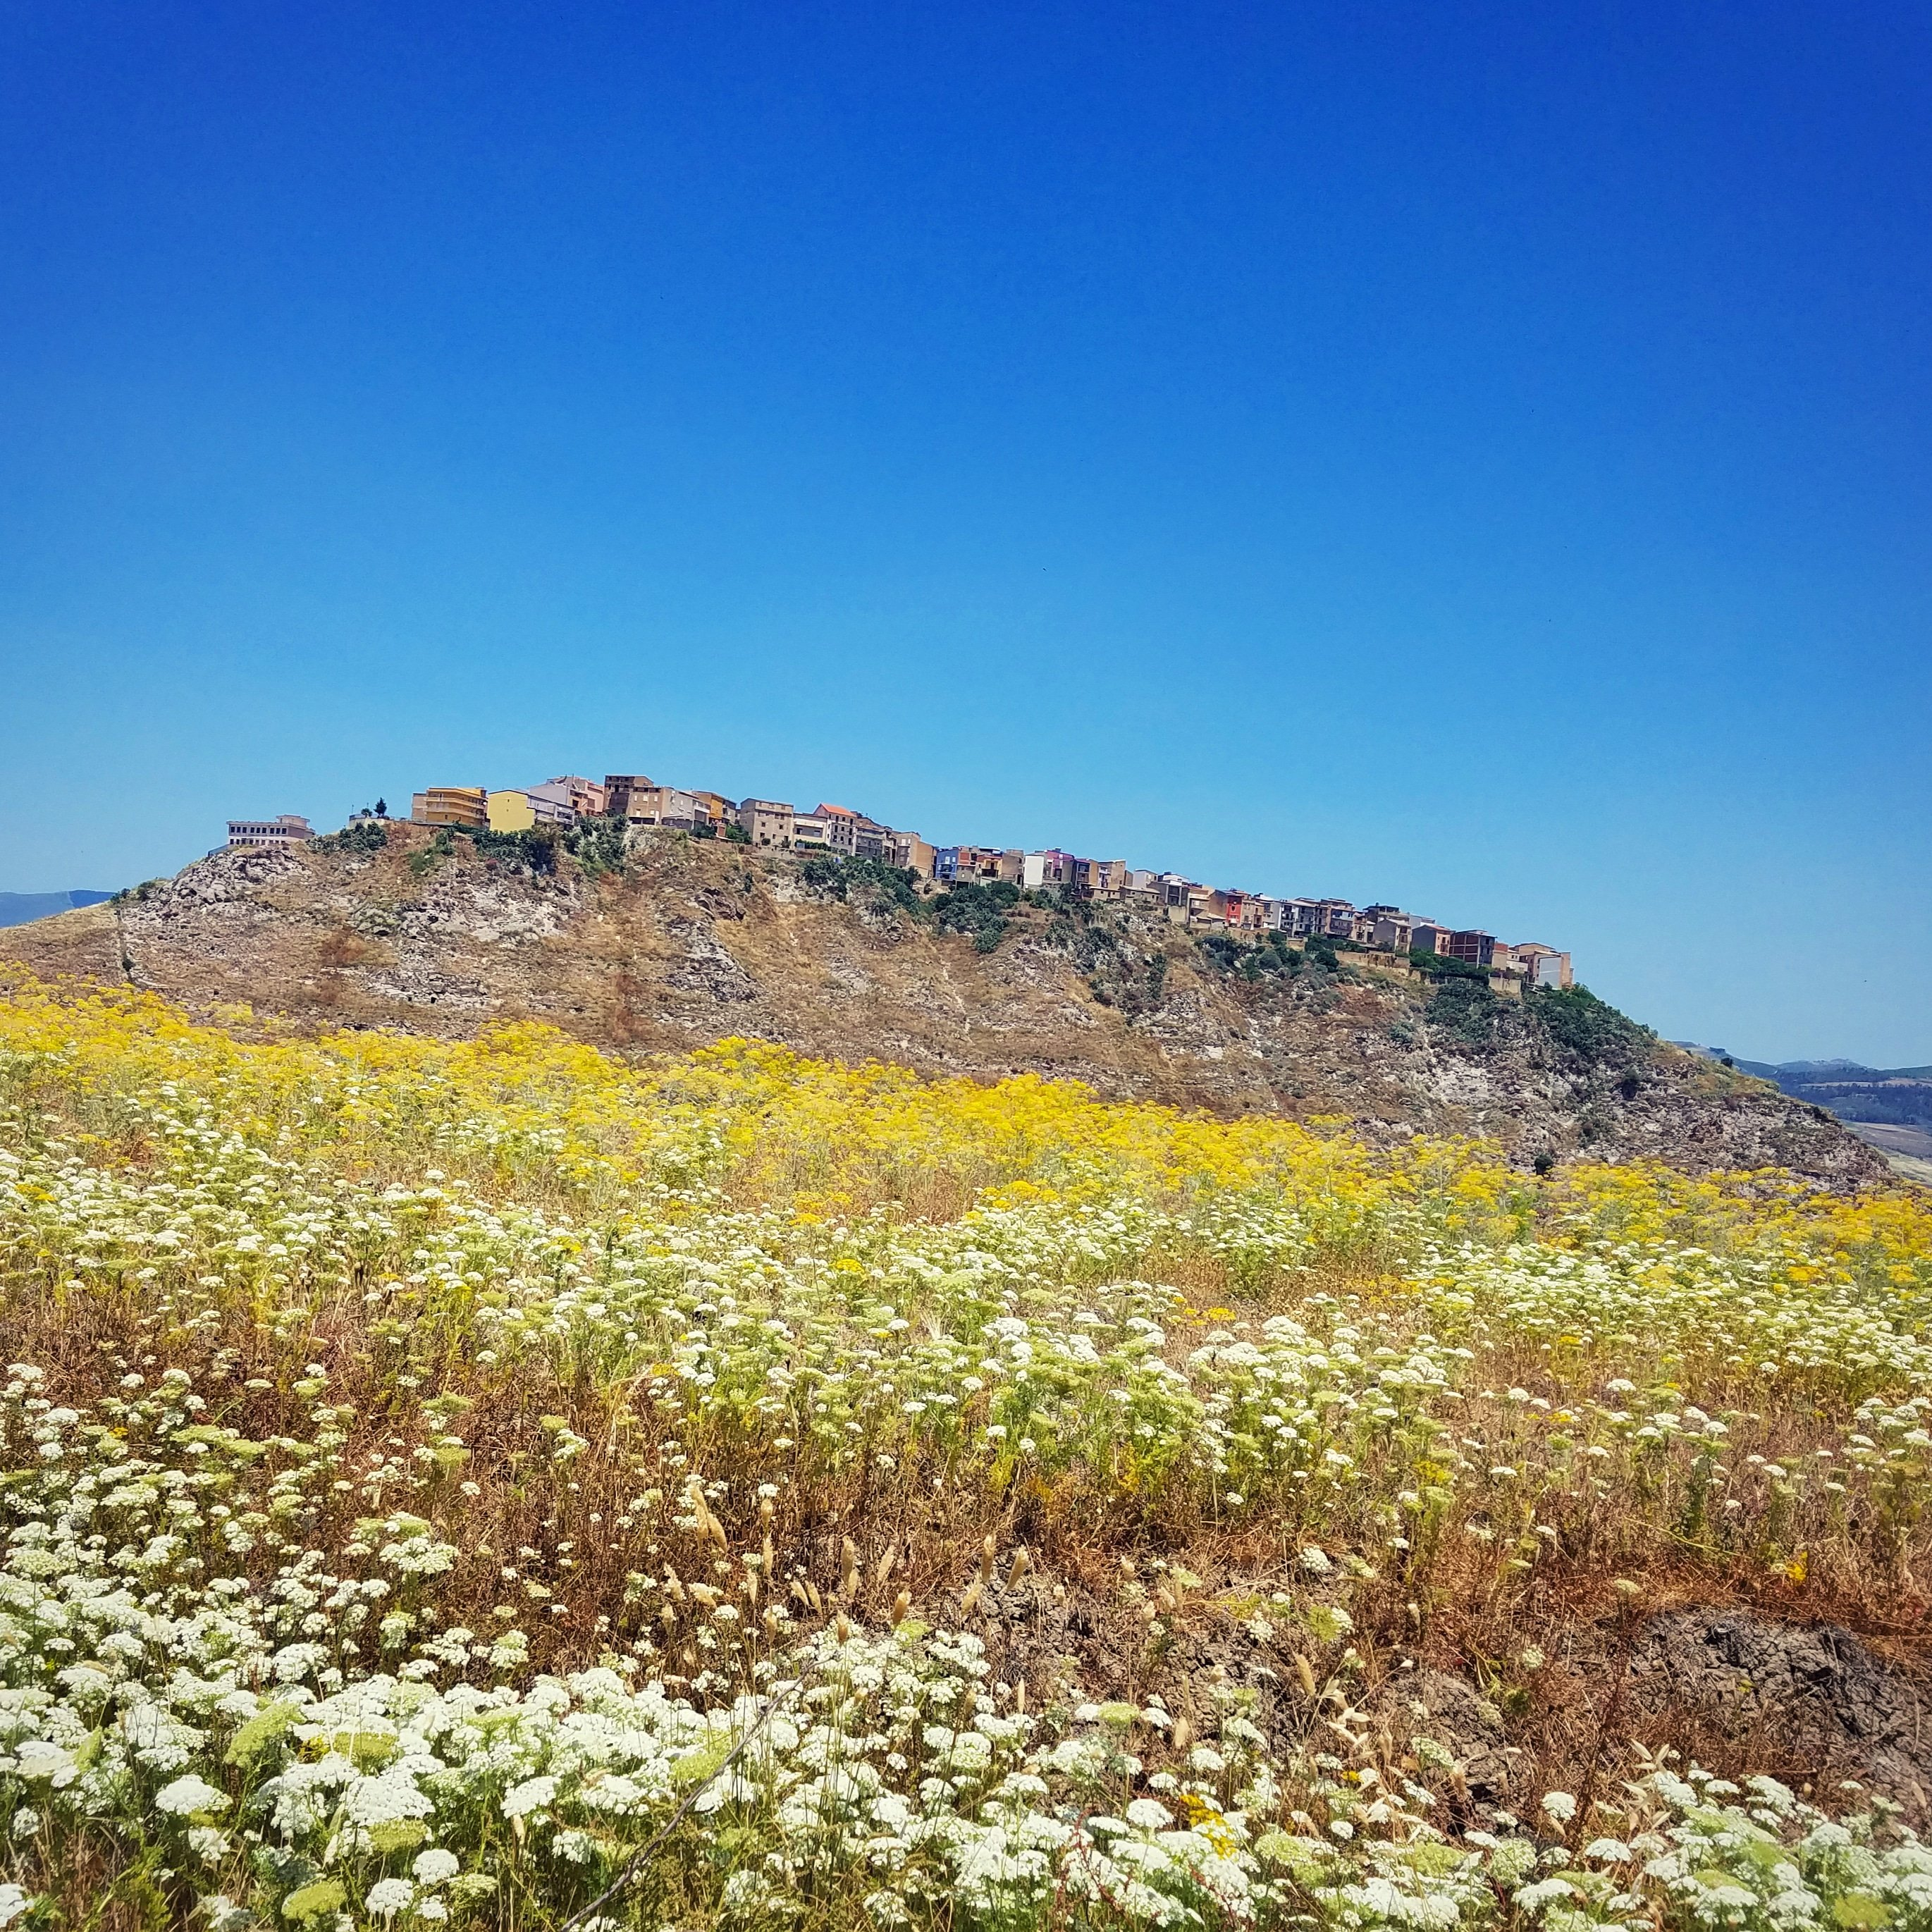 52 Reasons to Love Sicily   #38. Wild Landscapes